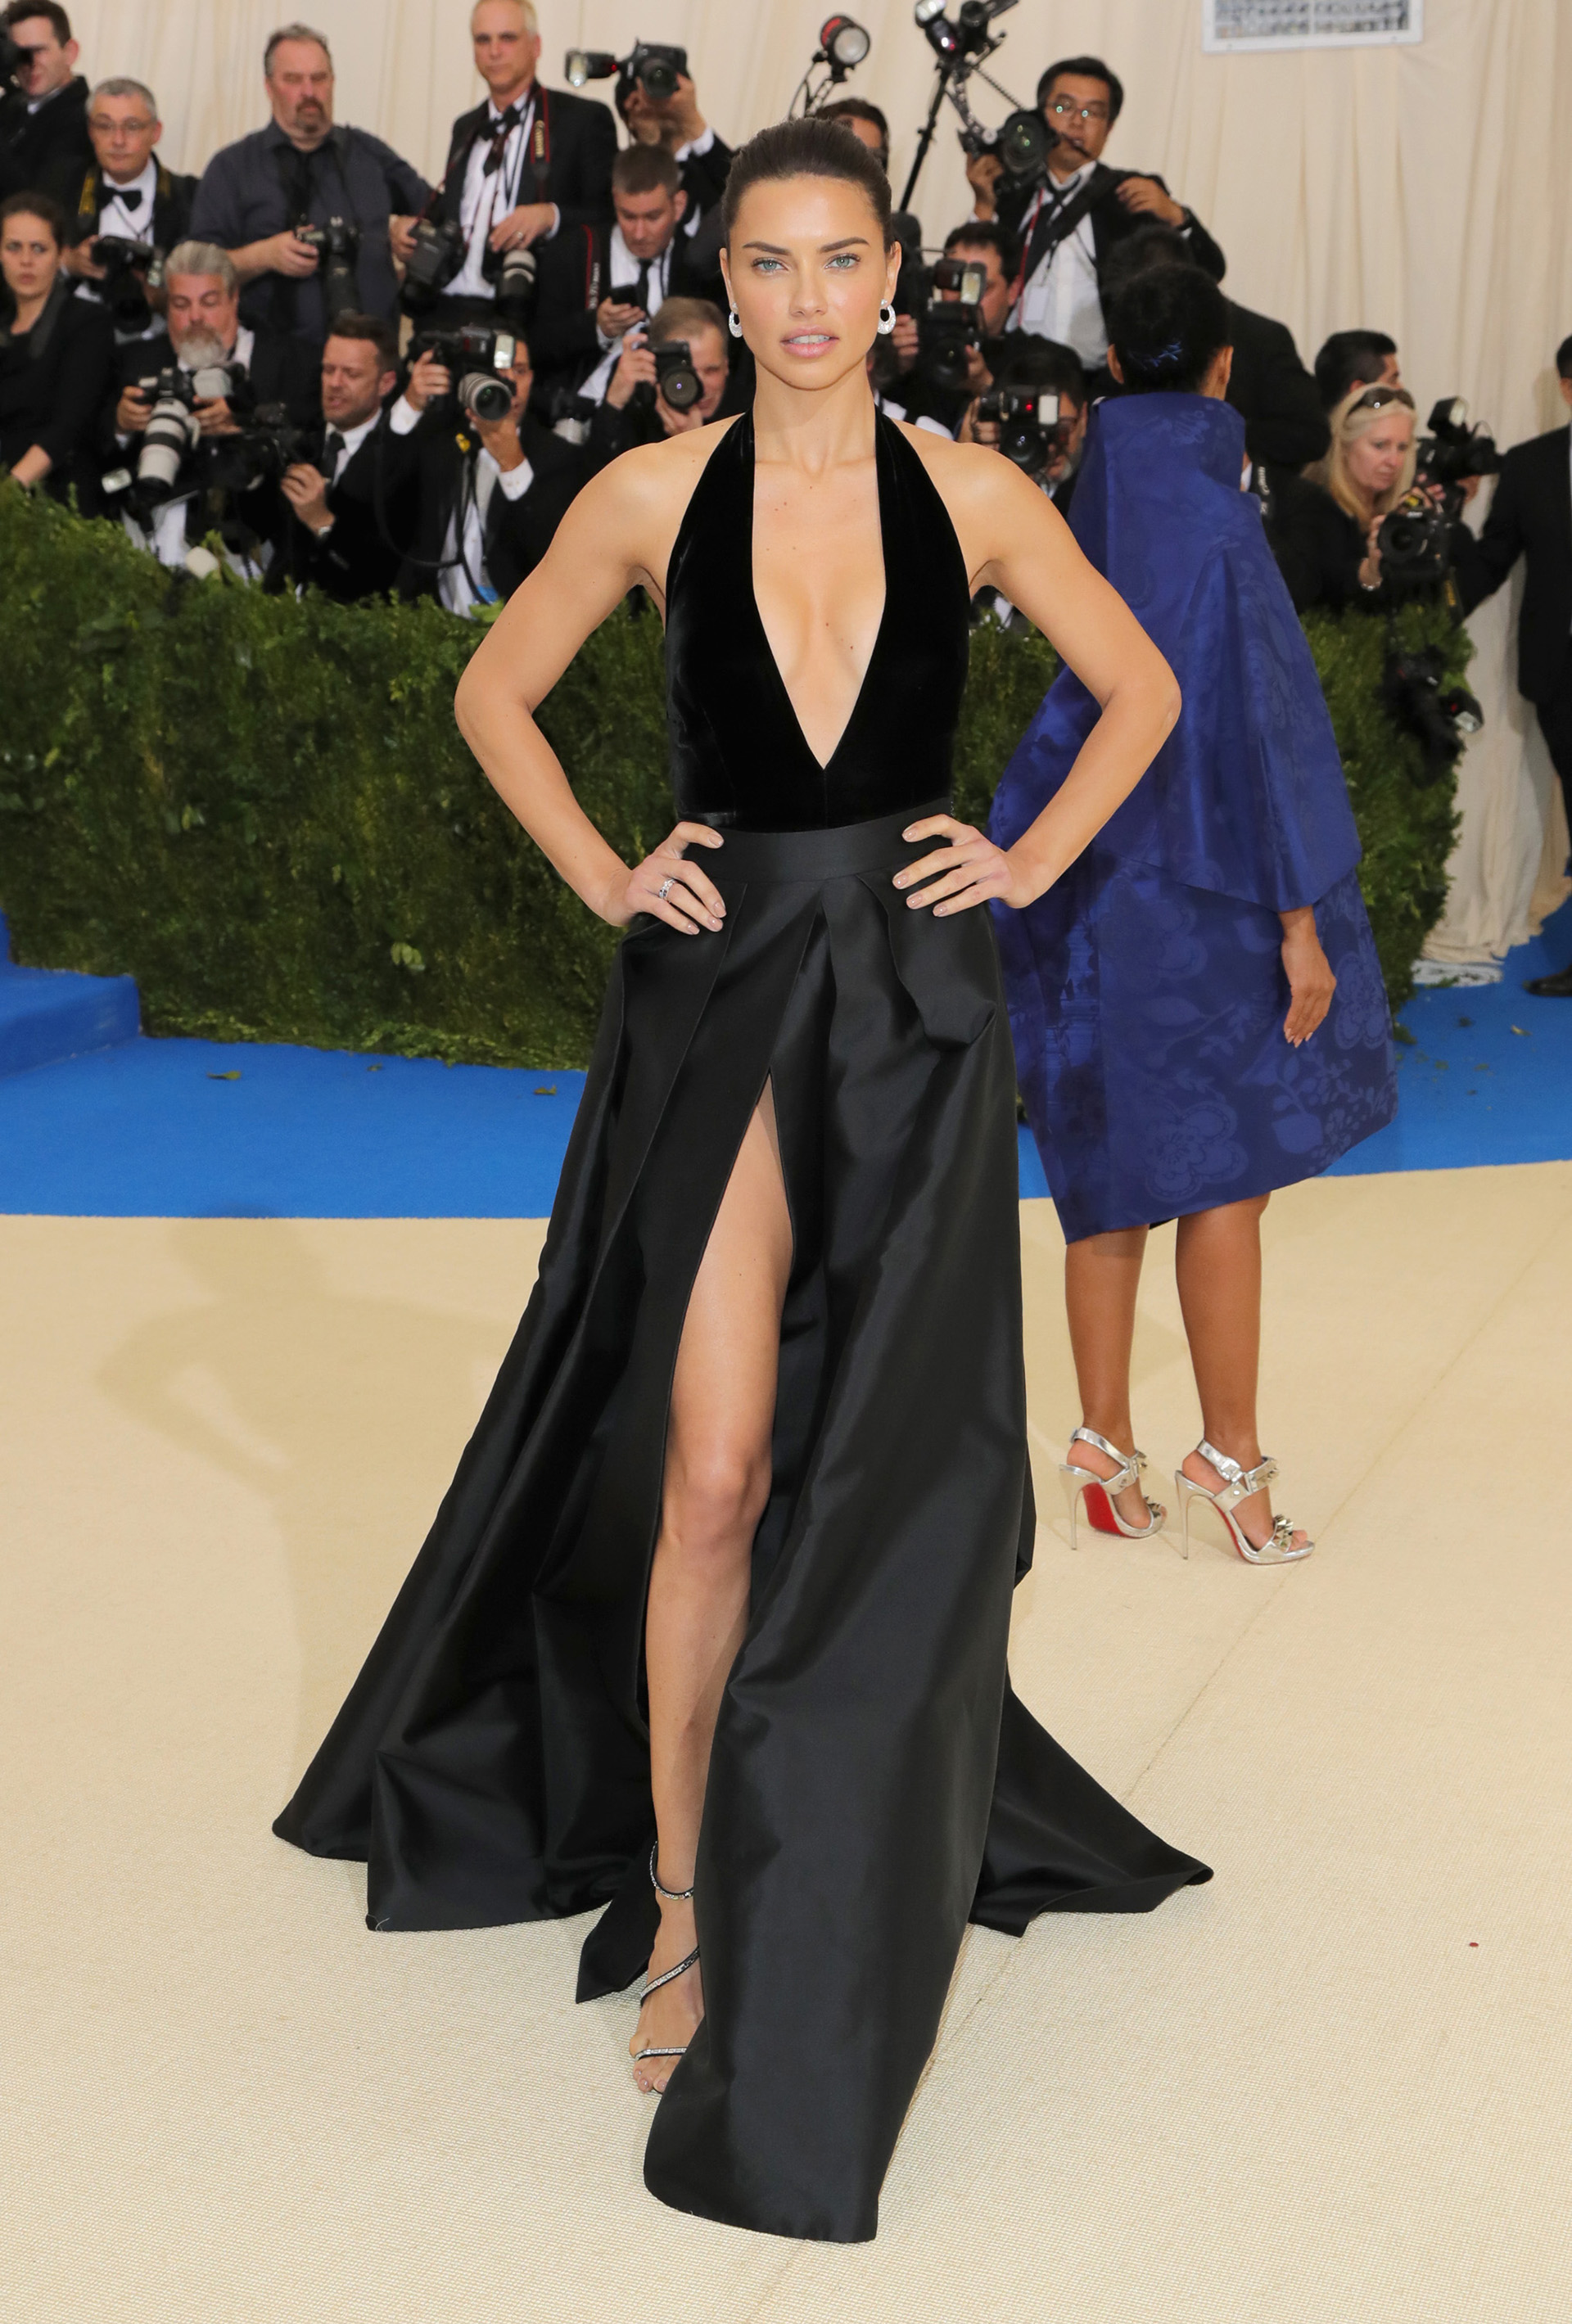 La supermodelo Adriana Lima se inclinó por un look minimalista, un look total black muy sexy (Getty Images)